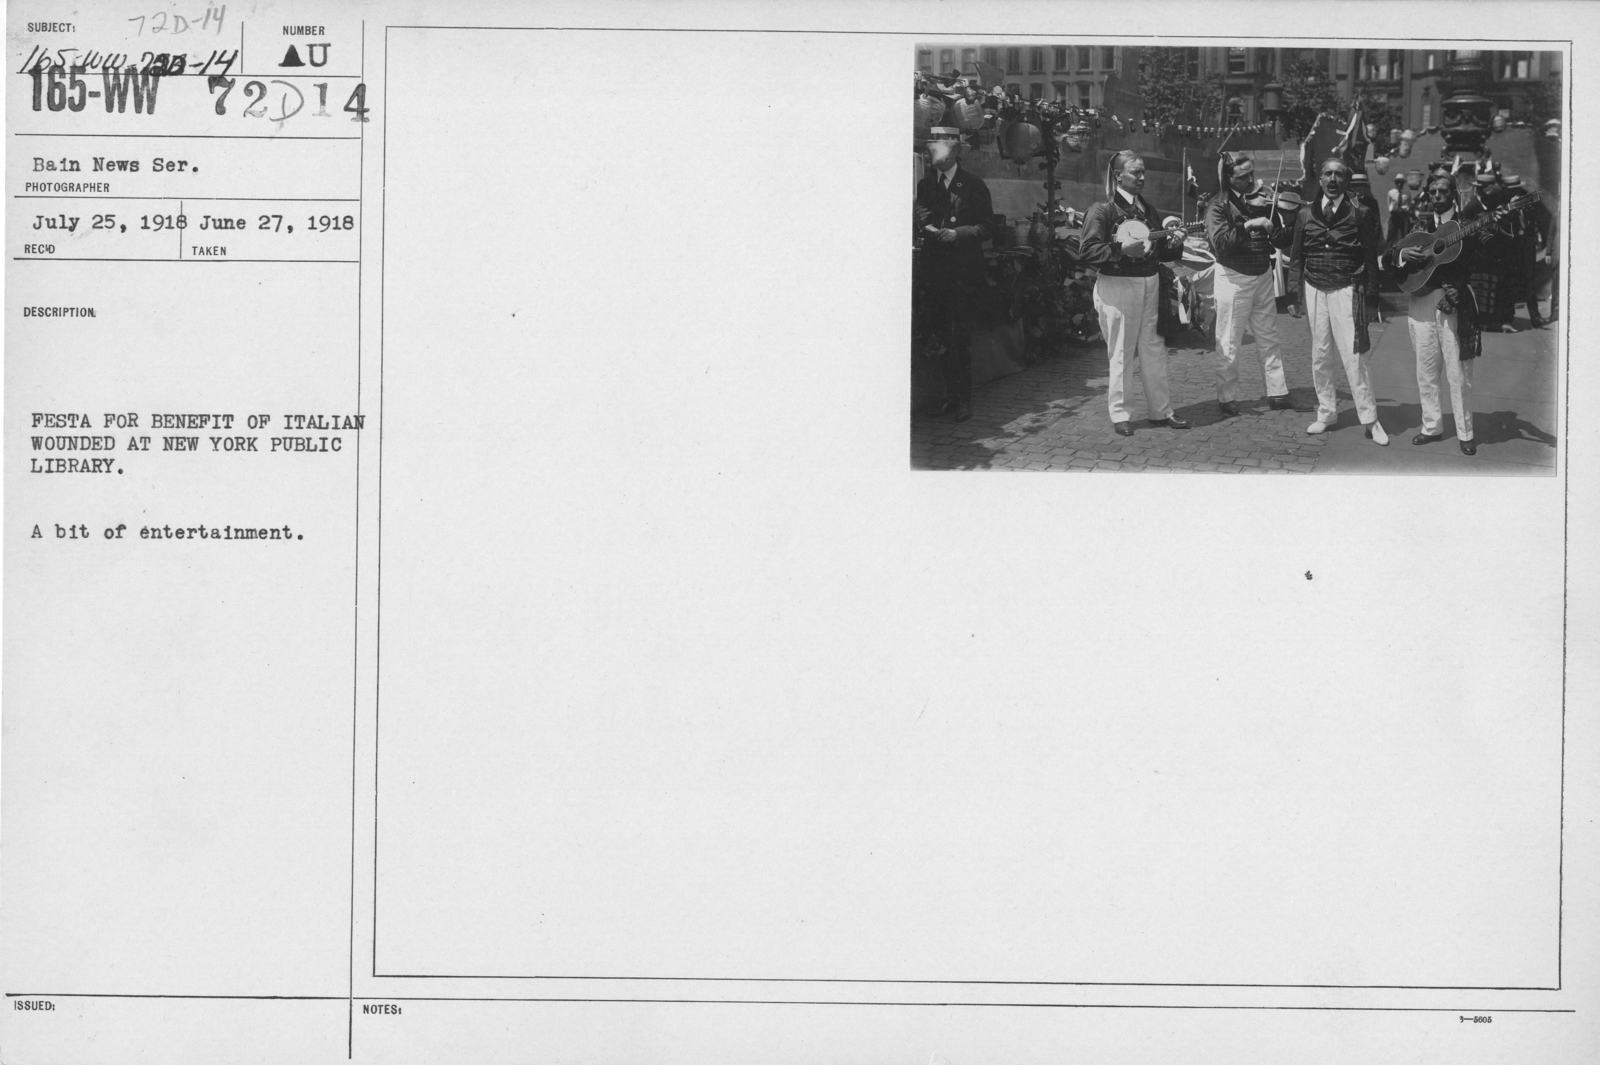 Ceremonies - Independence Day, 1918 - Festa for benefit of Italian wounded at New York Public Library. A bit of entertainment